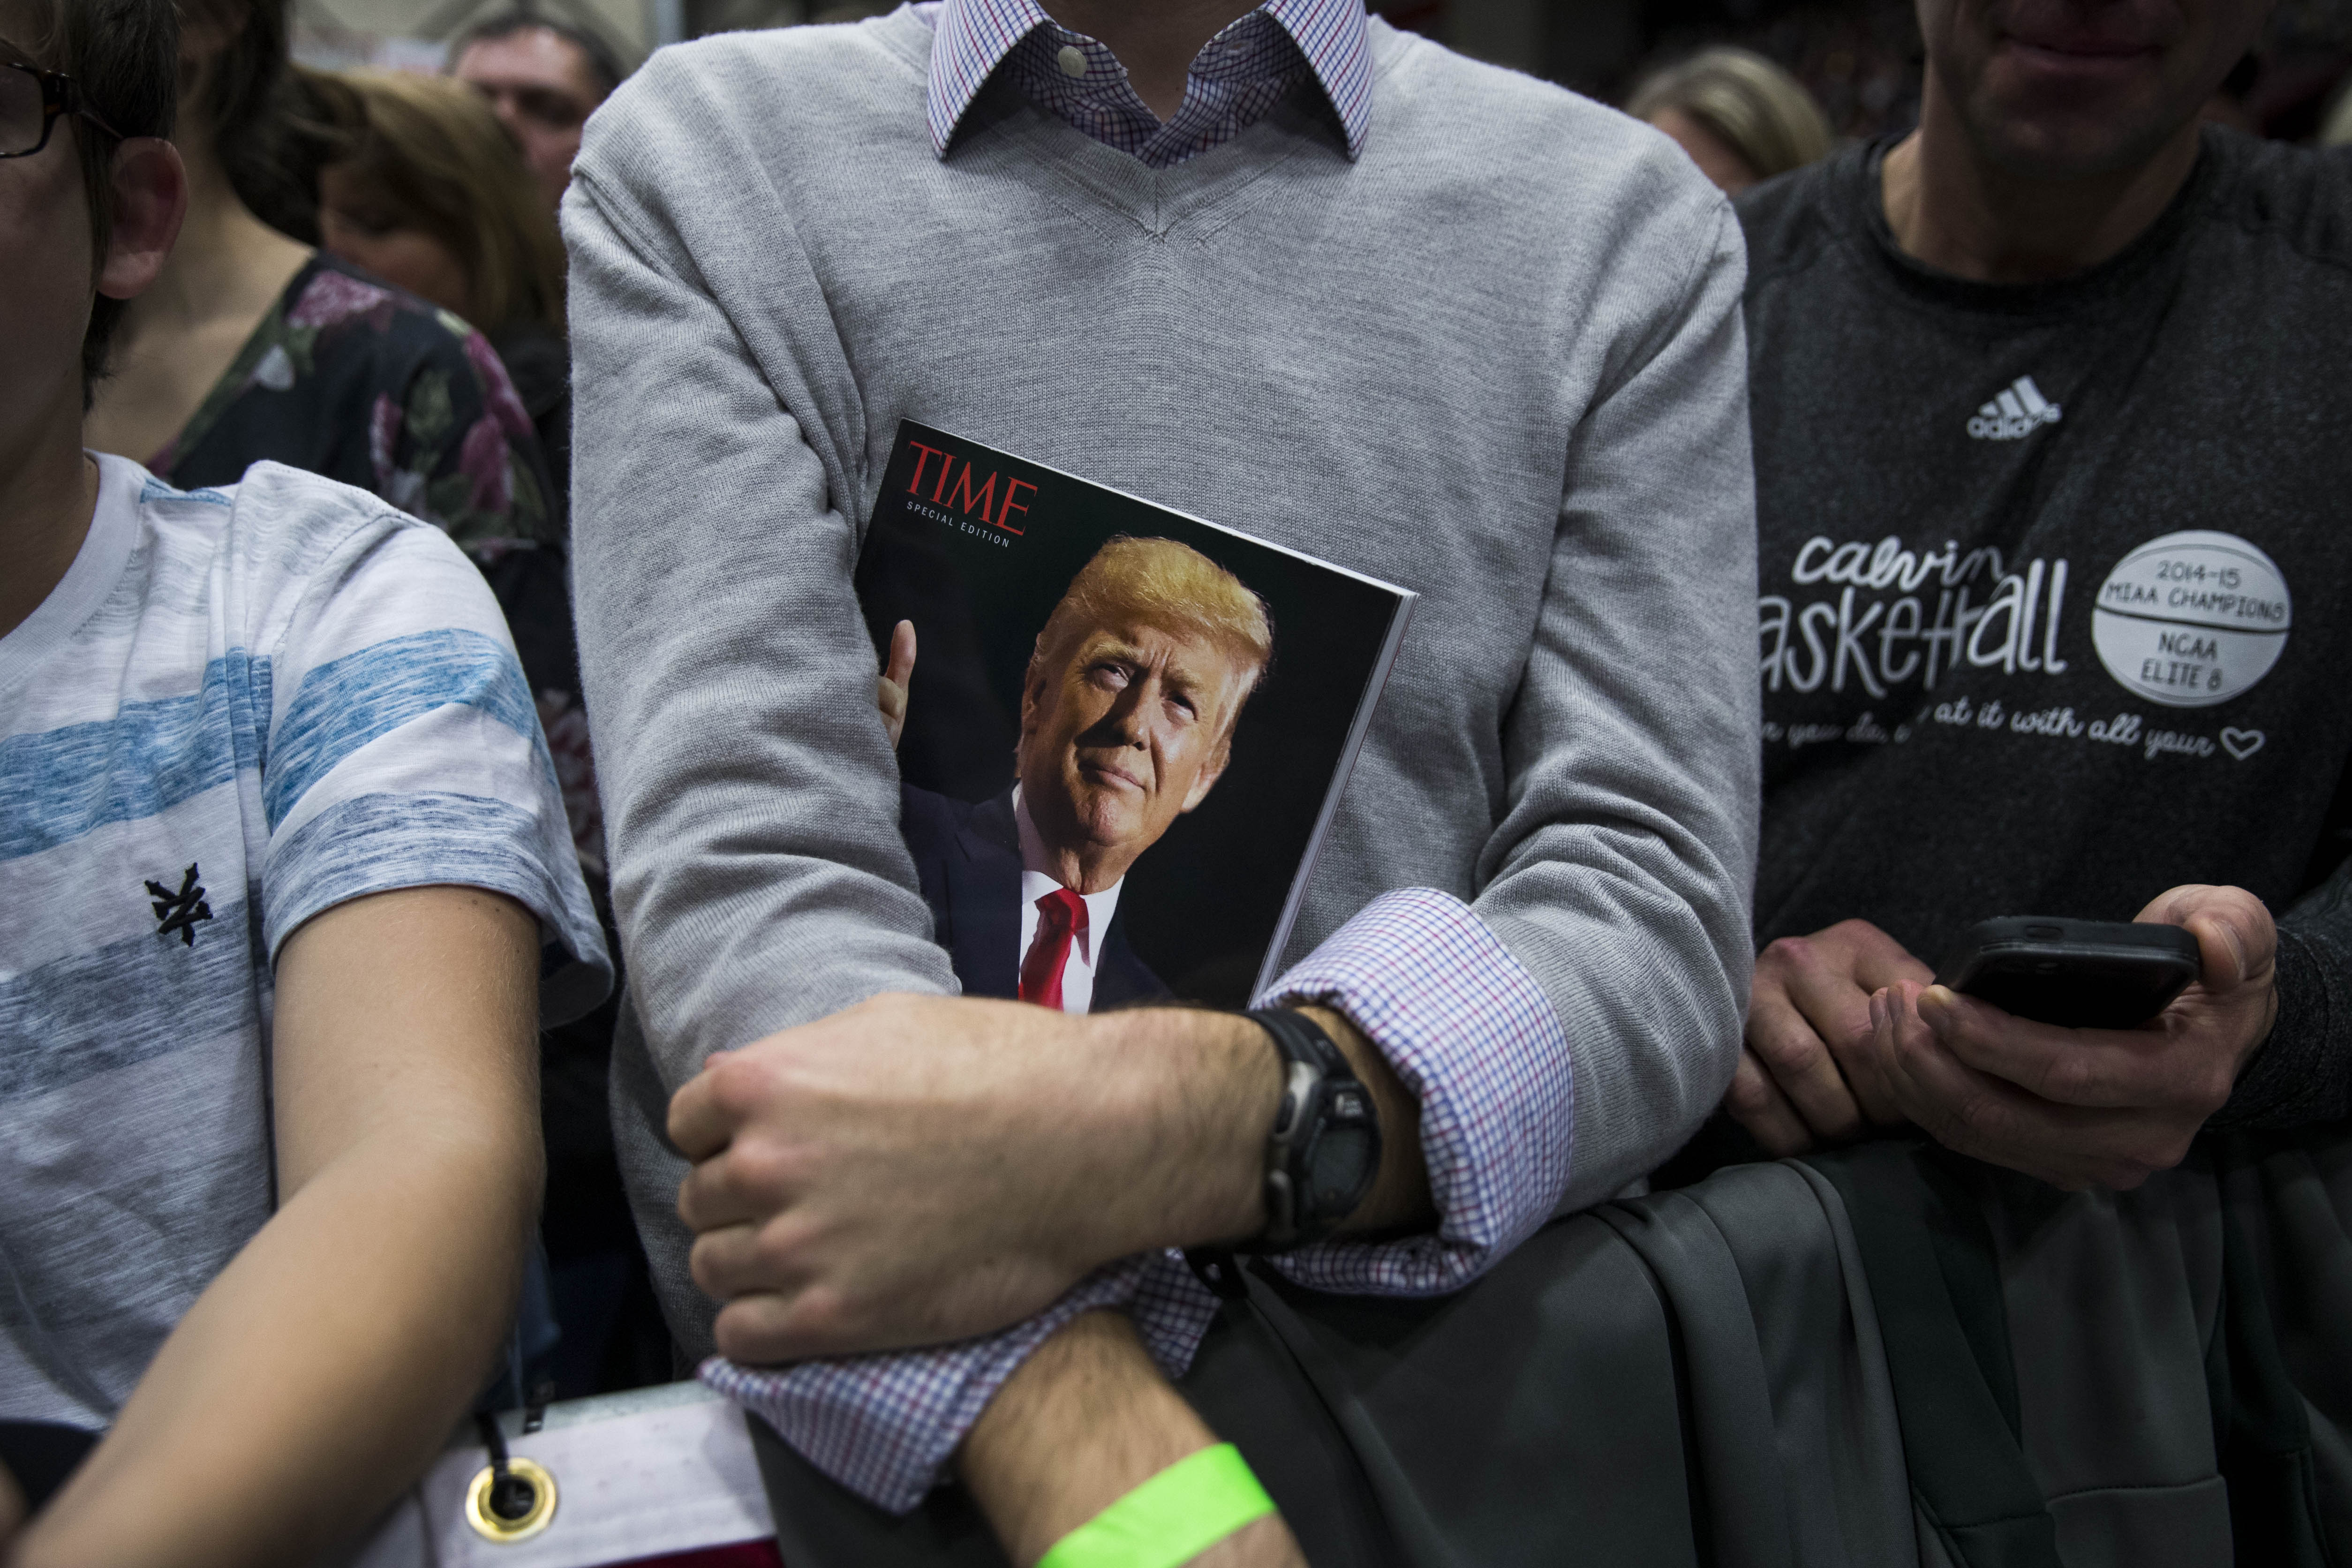 A man holding a copy of Time magazine with President Trump's face on the cover